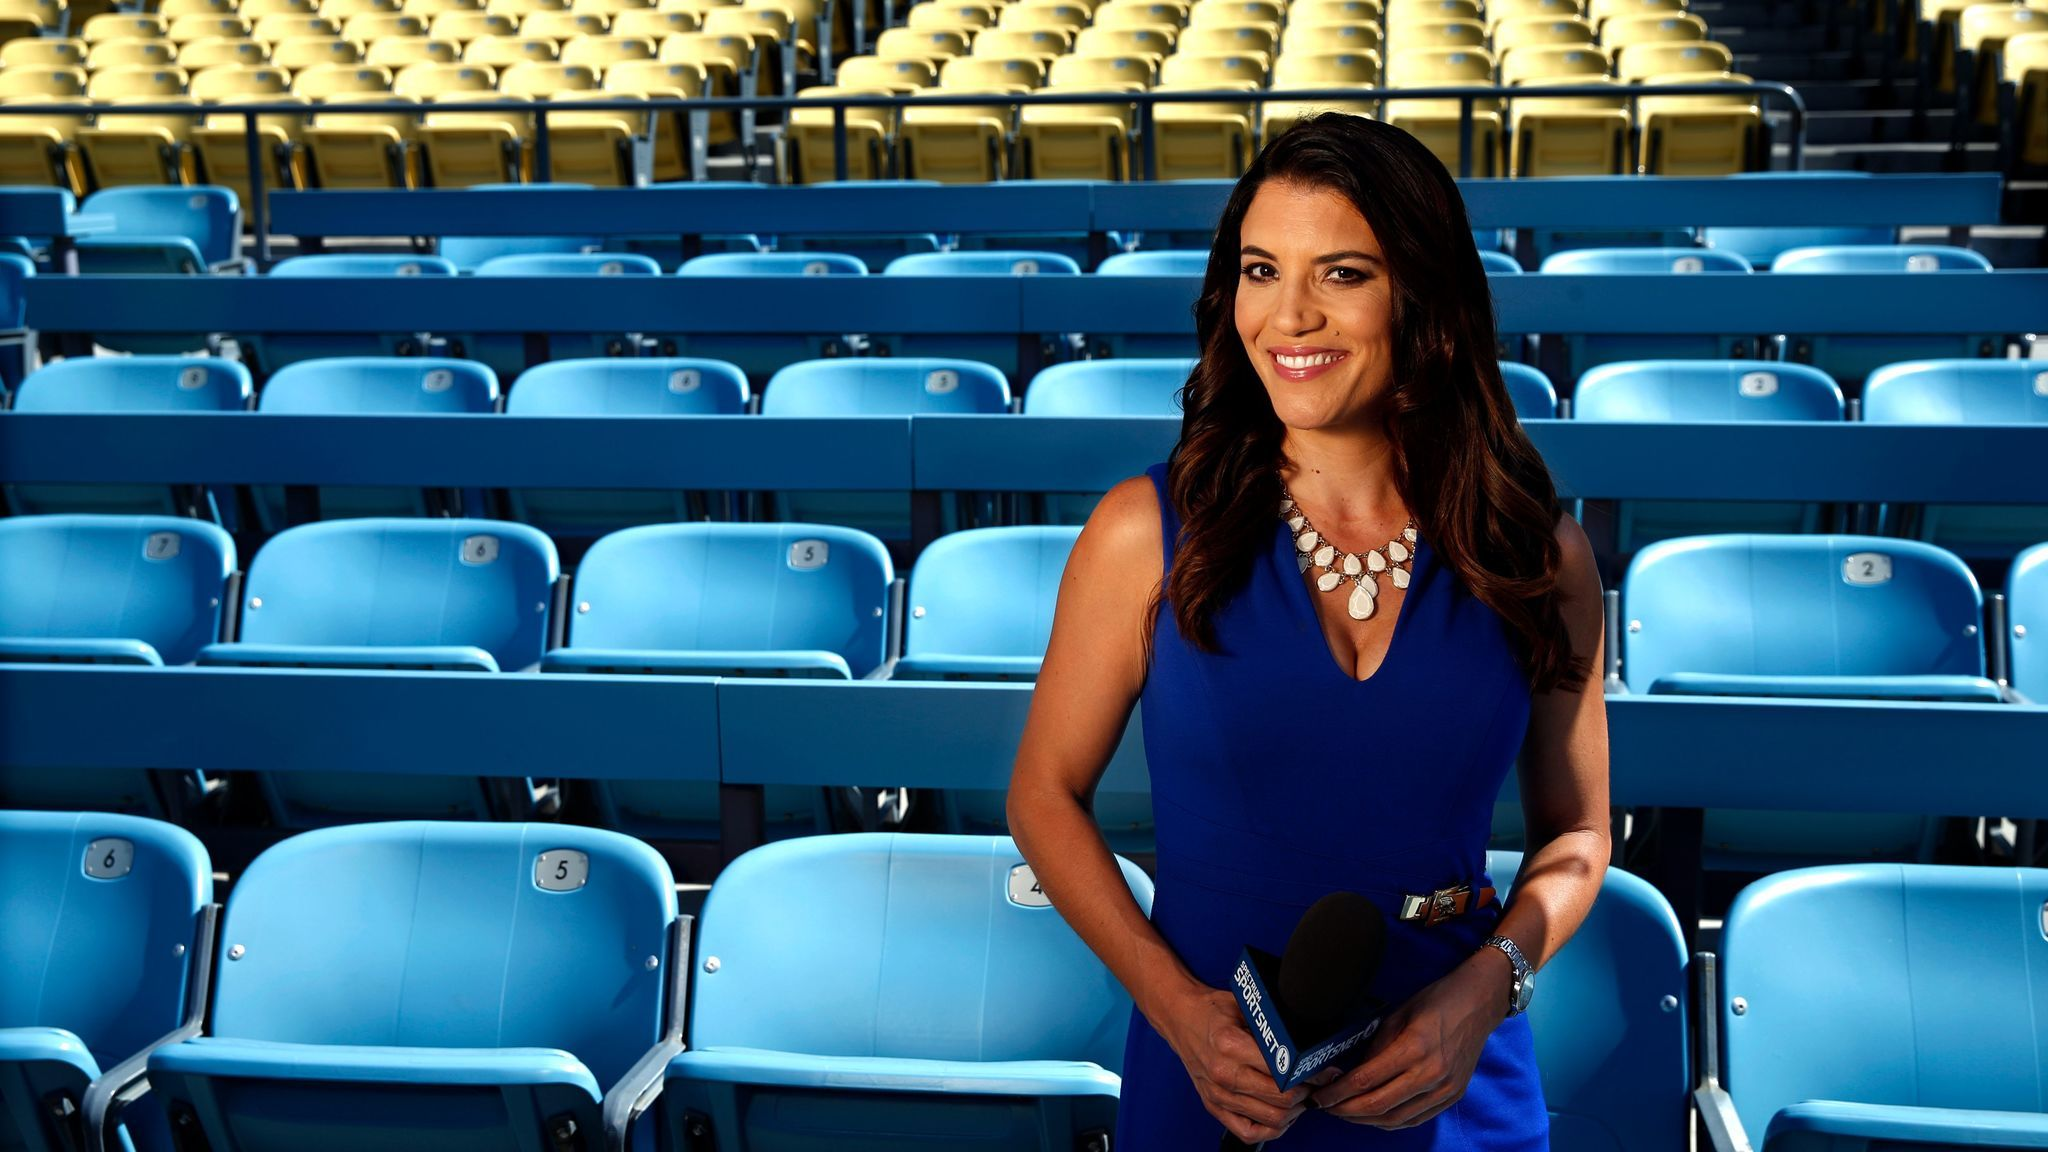 Los Angeles Dodgers broadcaster Alanna Rizzo